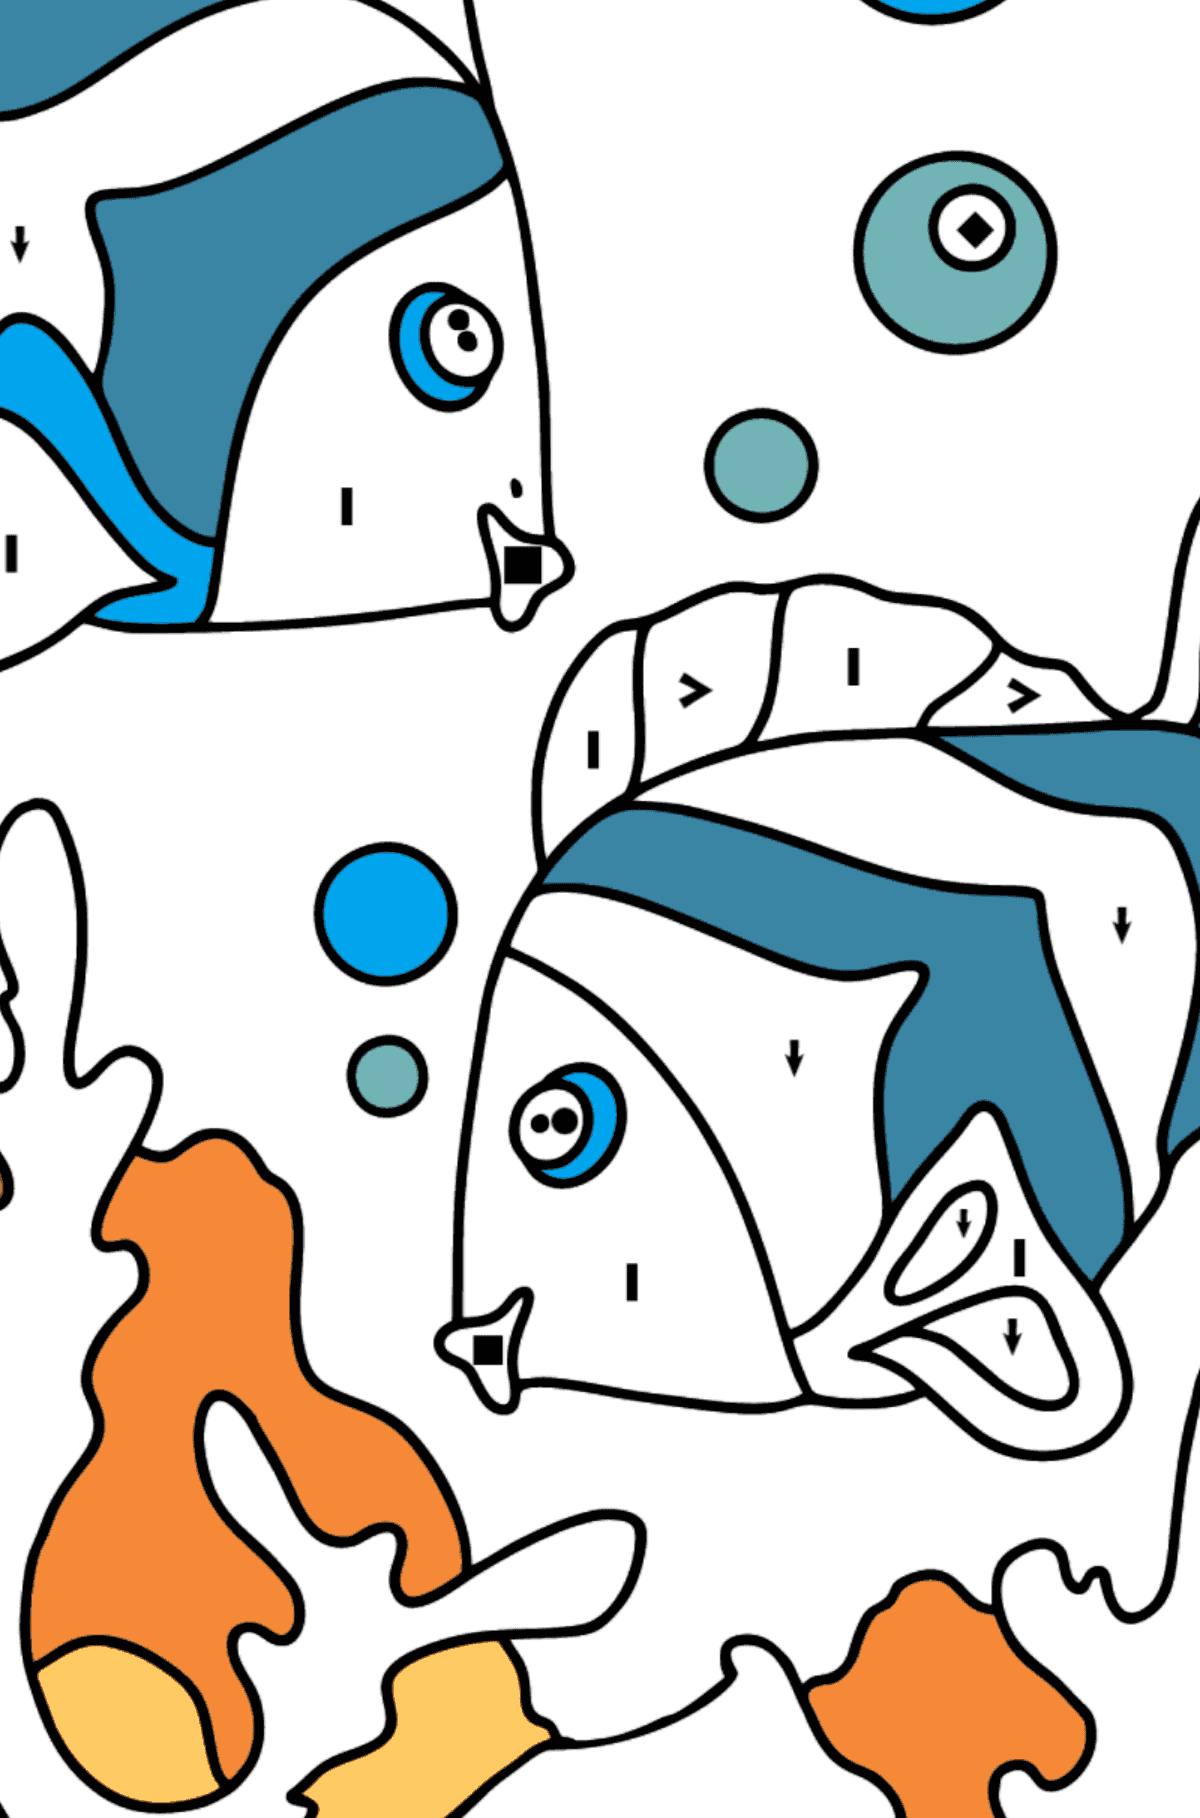 Coloring Page - Fish are Swimming Very Energetically - Coloring by Symbols for Kids